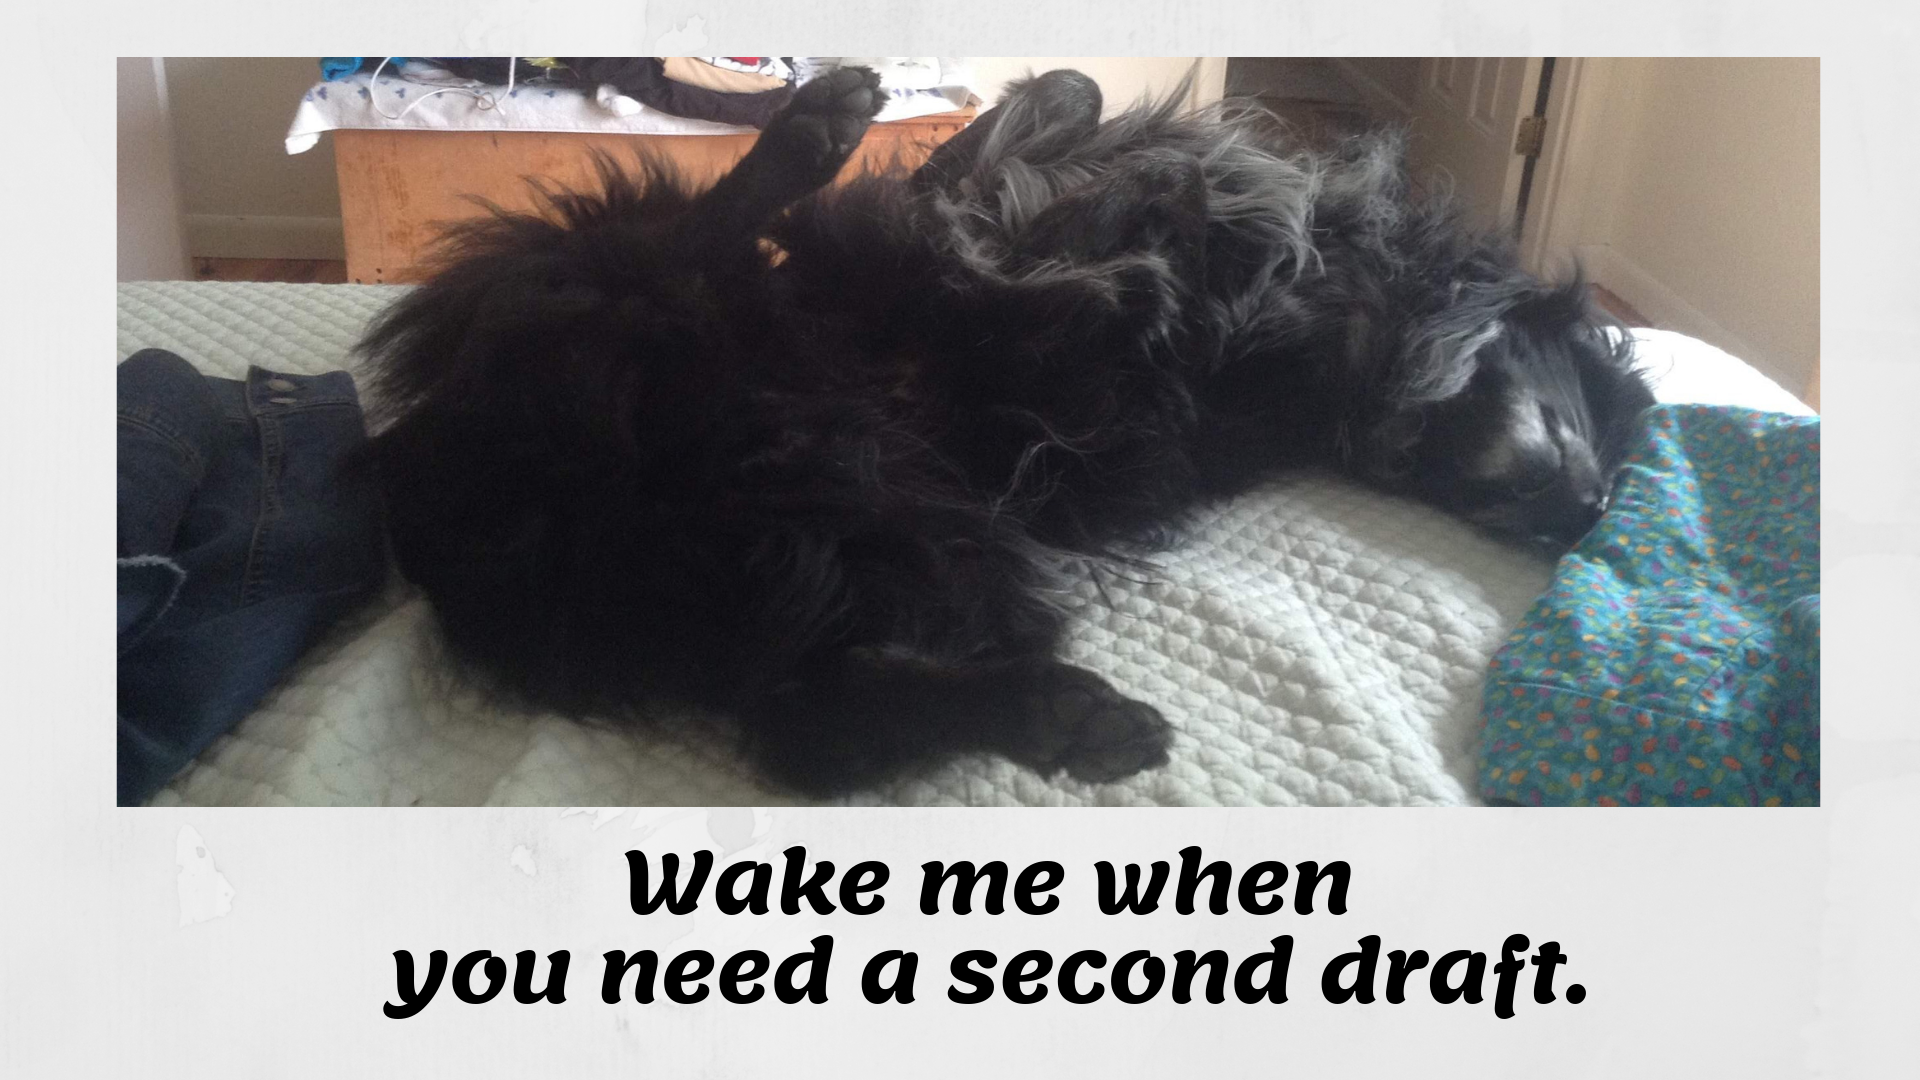 black dog writing poster 'wake me when you need a second draft'